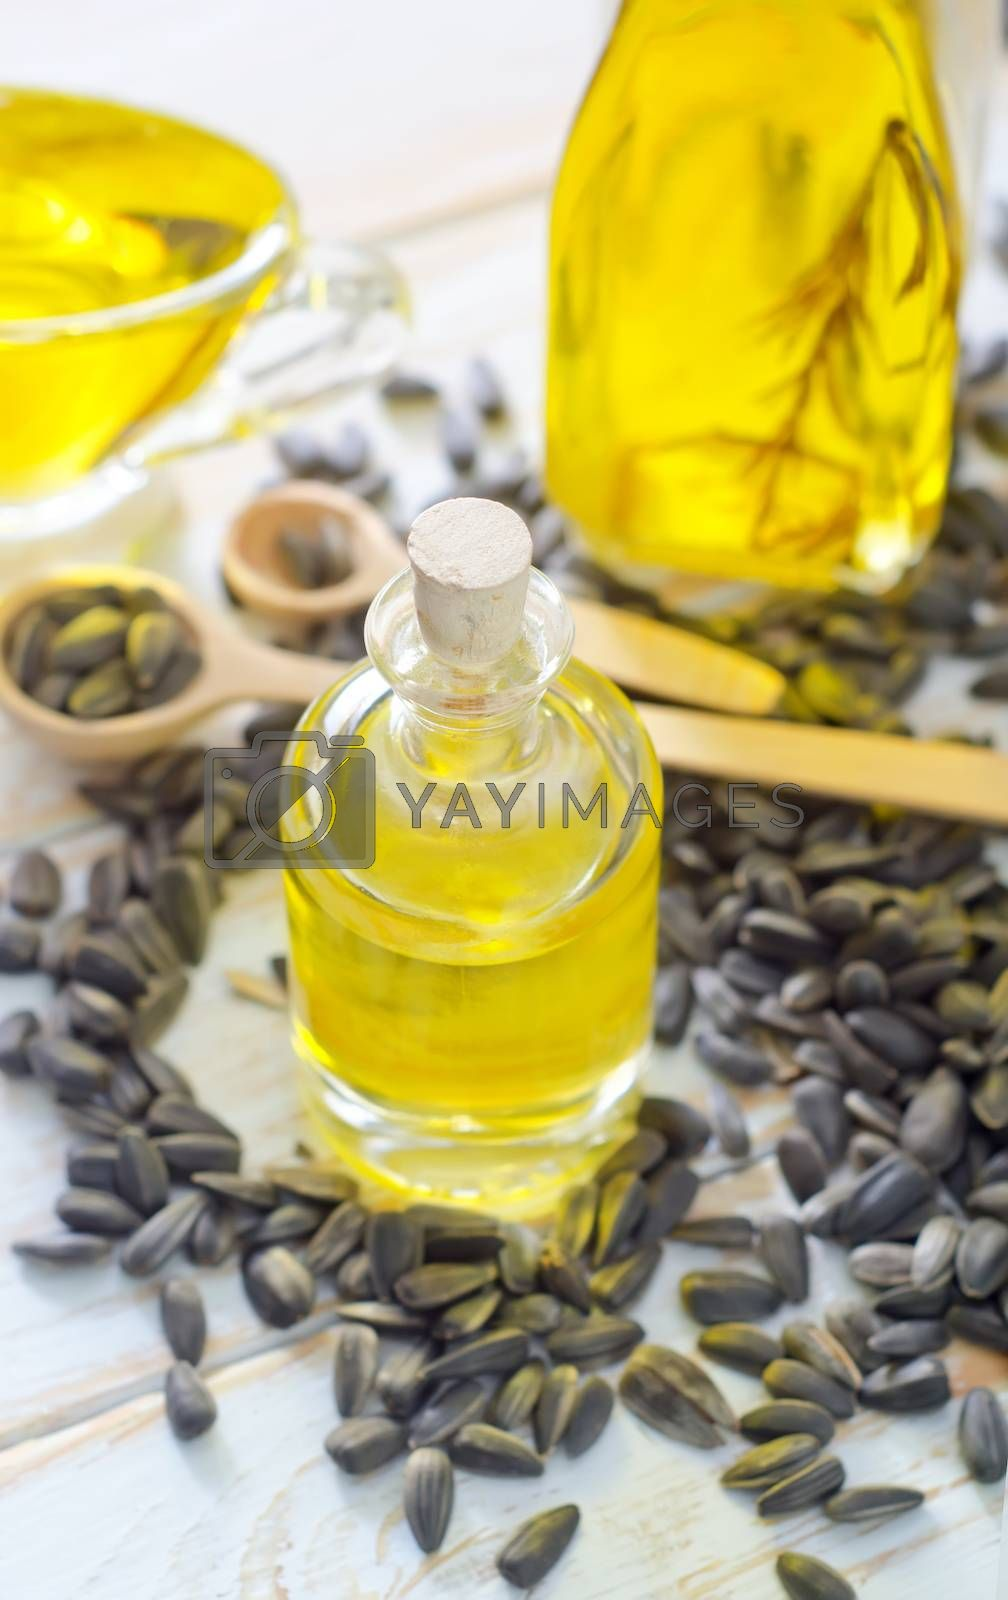 Royalty free image of sunflower seeds and oil by tycoon